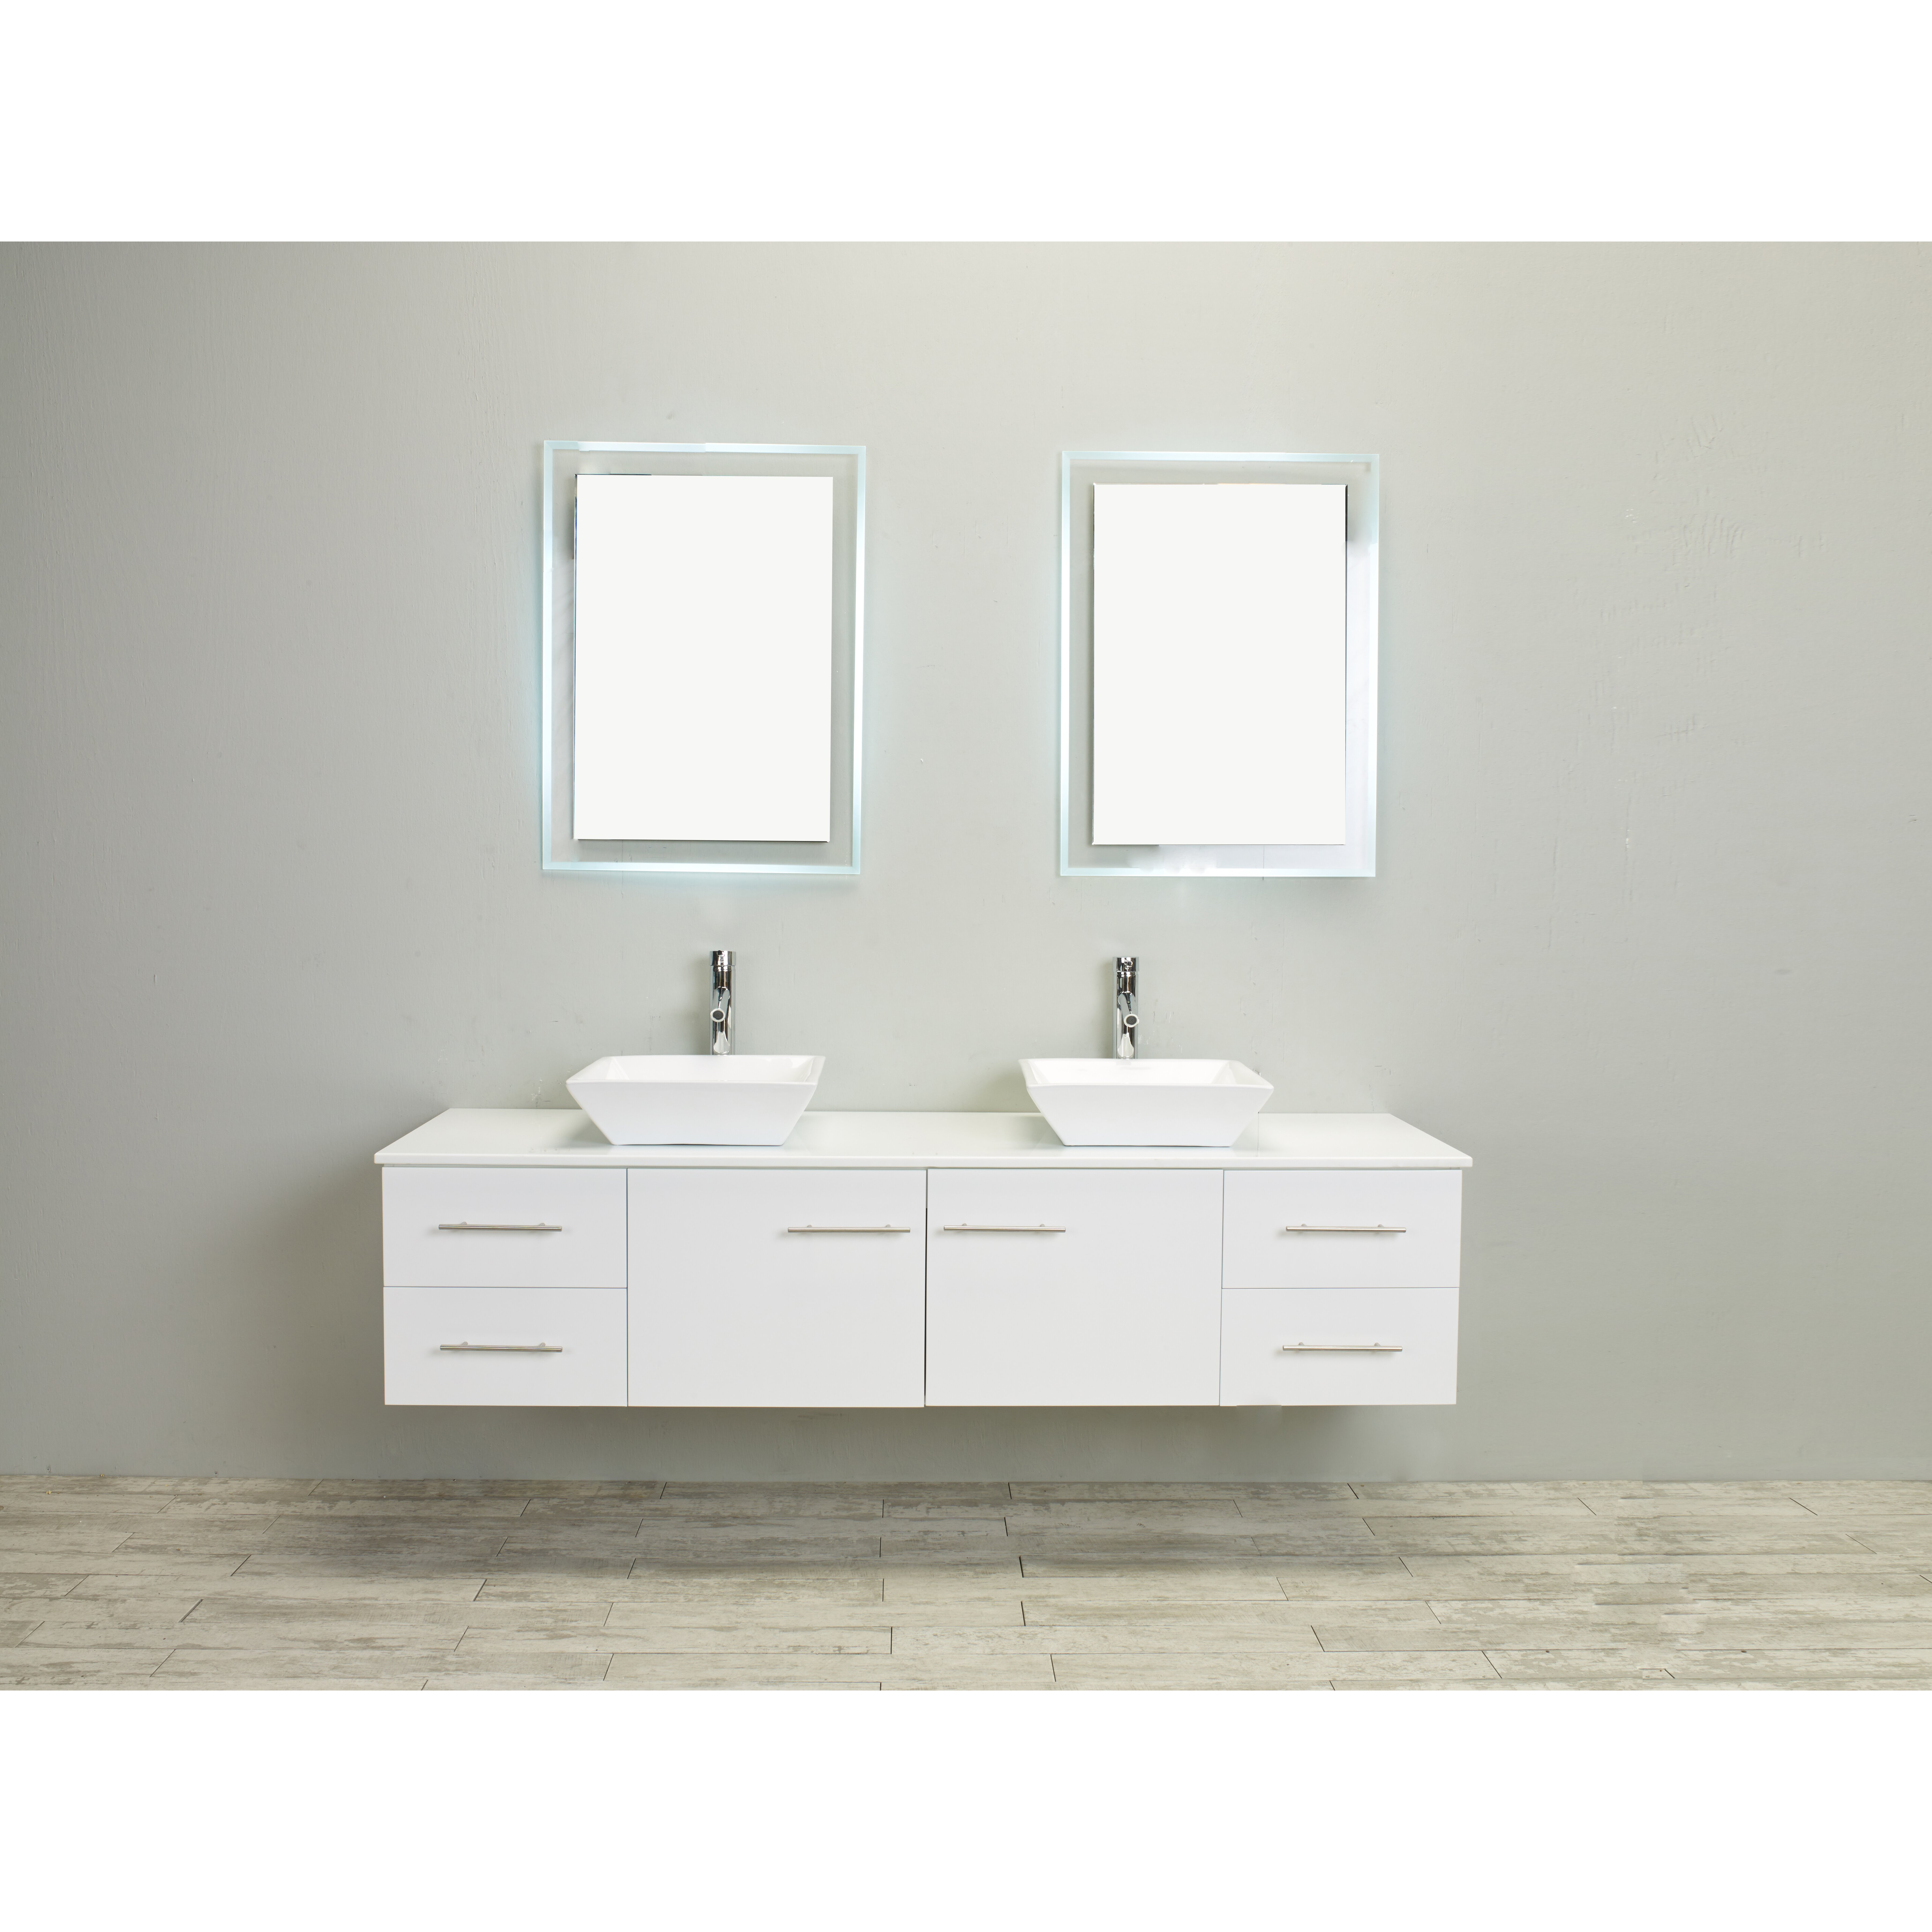 Eviva Totti Wave 60 Inch White Modern Double Sink Bathroom